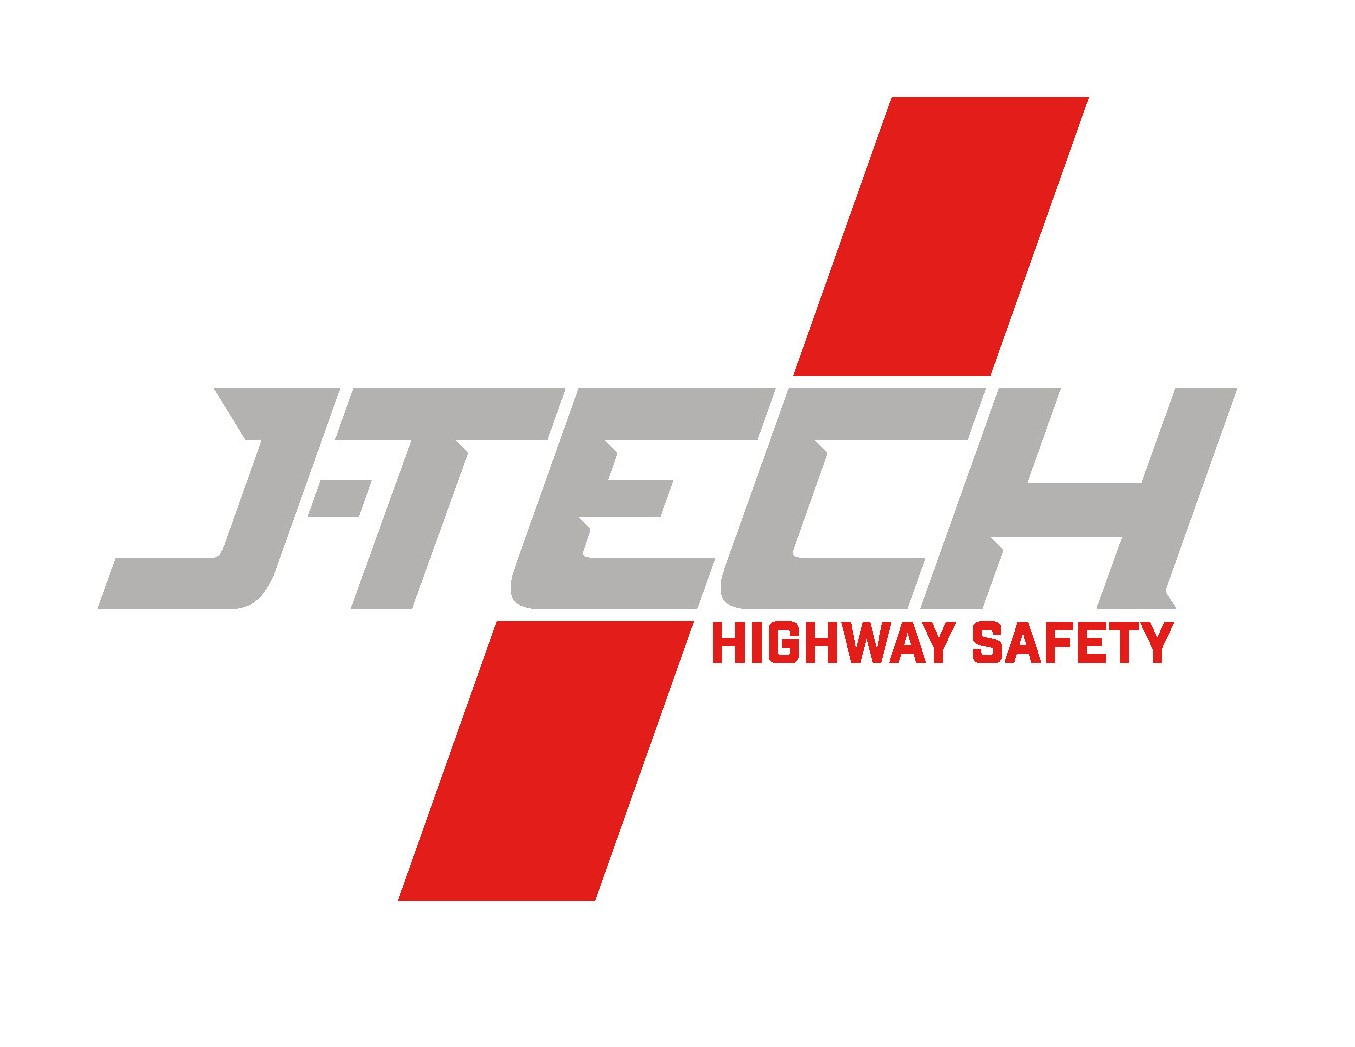 J-Tech Highway Safety